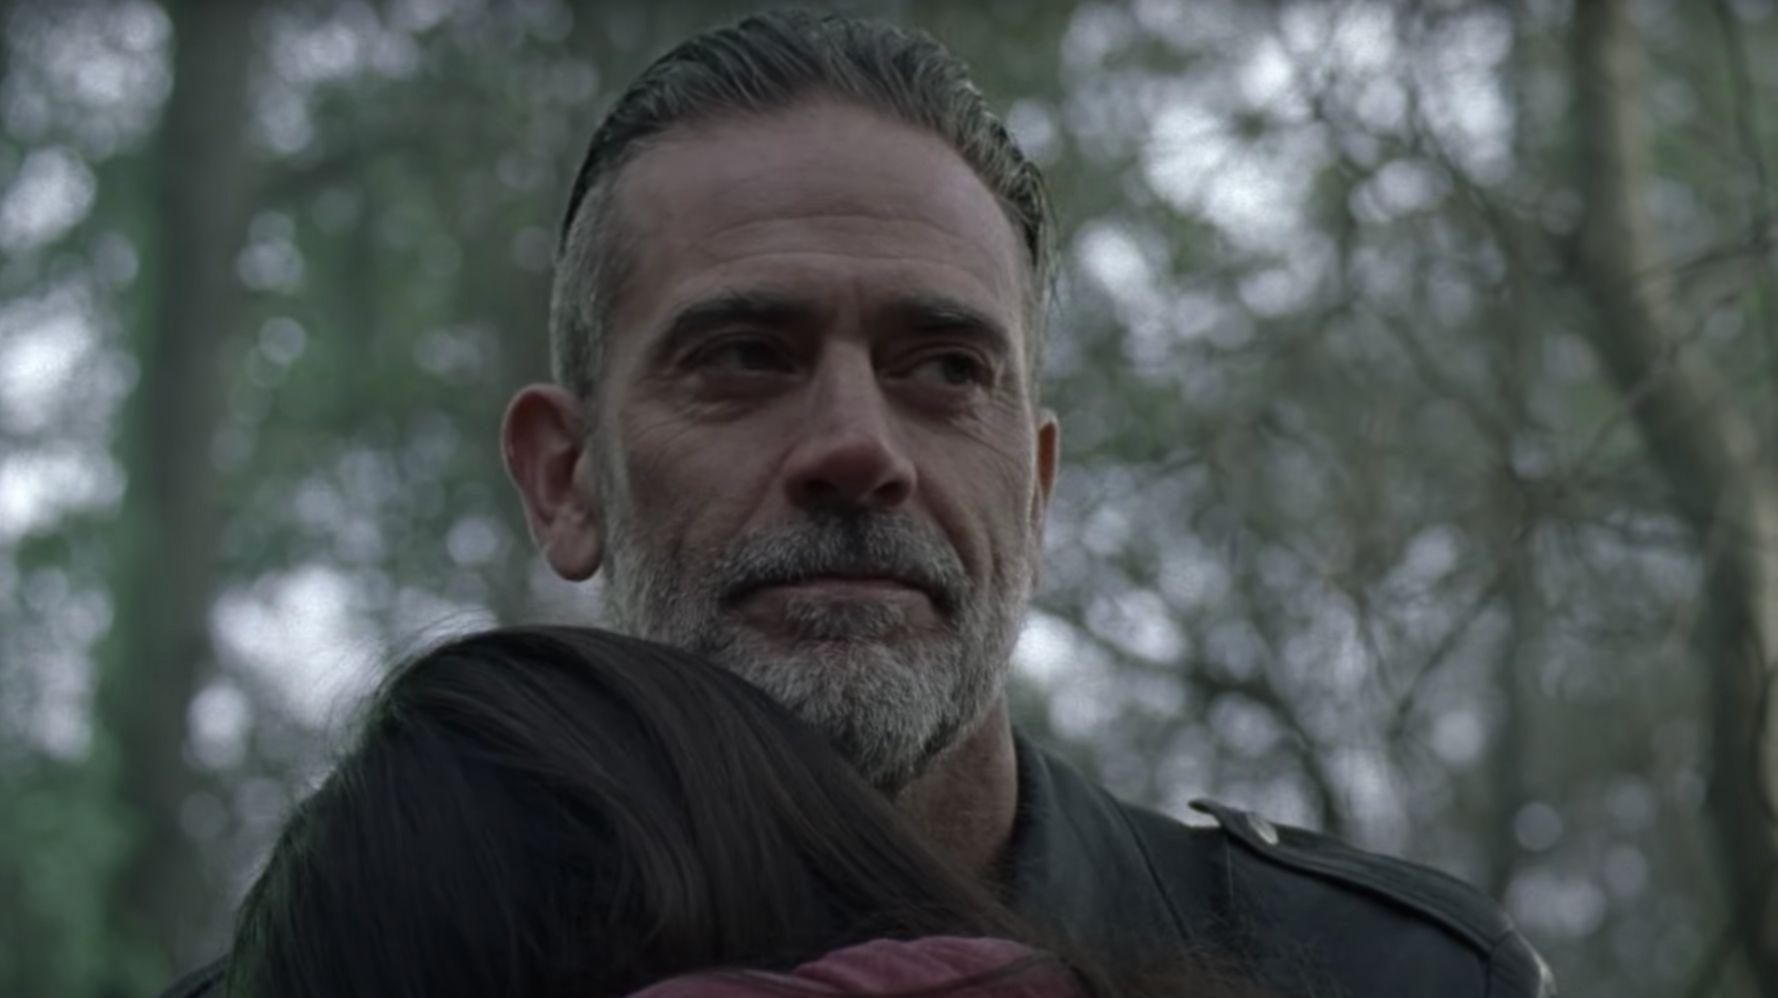 'The Walking Dead' Teases The Tense Reunion You've Been Waiting For